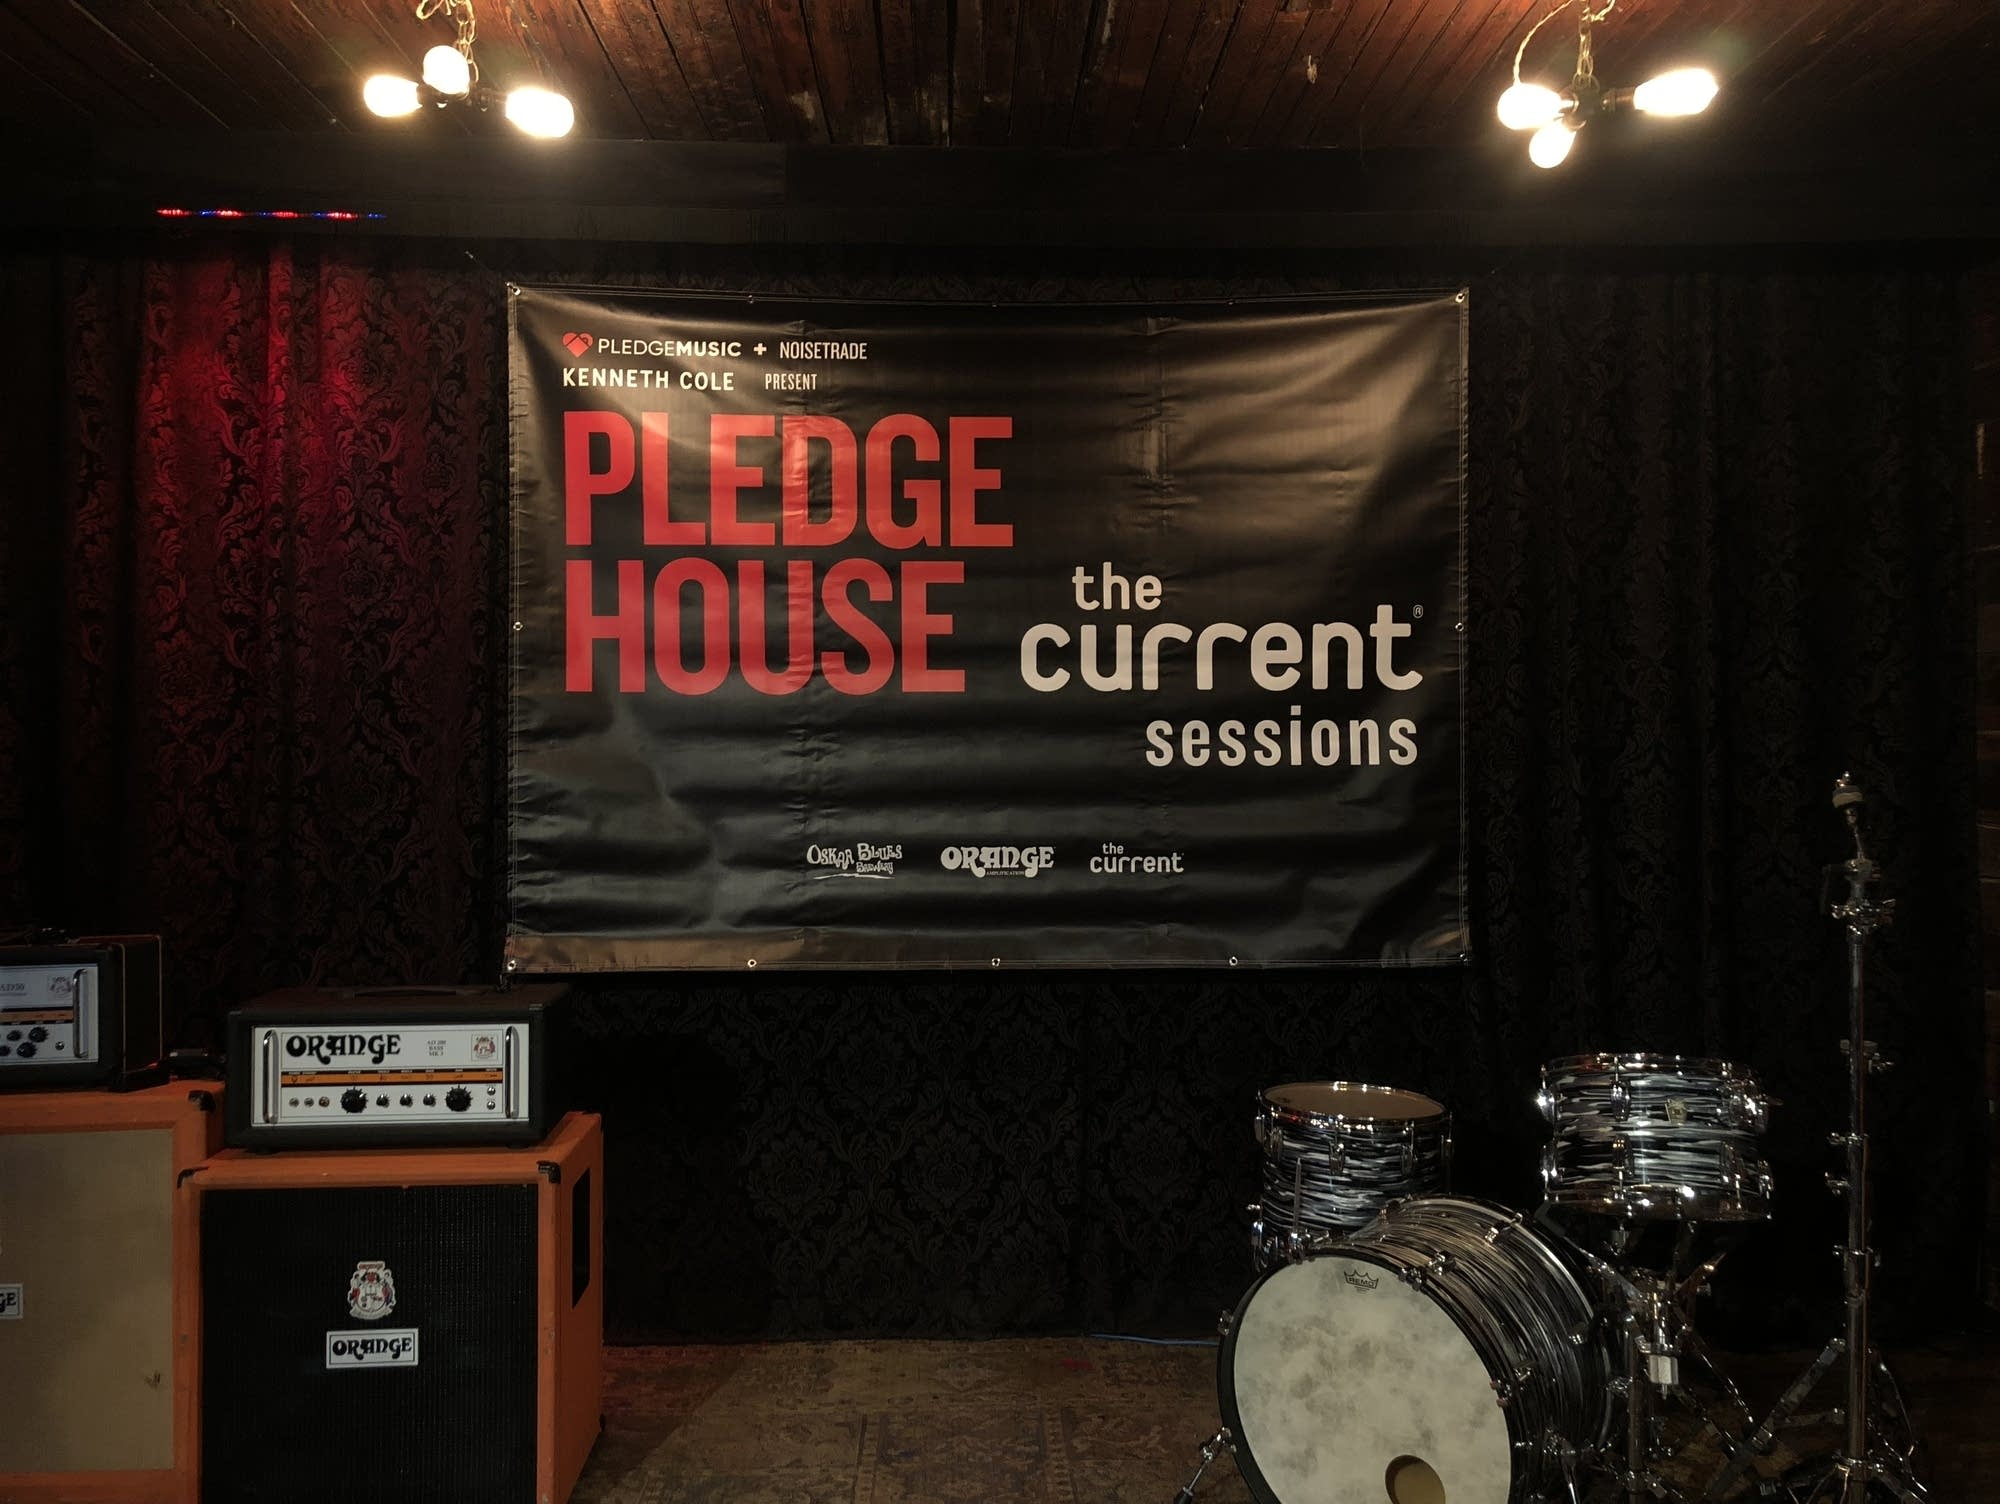 The Current Sessions at PledgeHouse